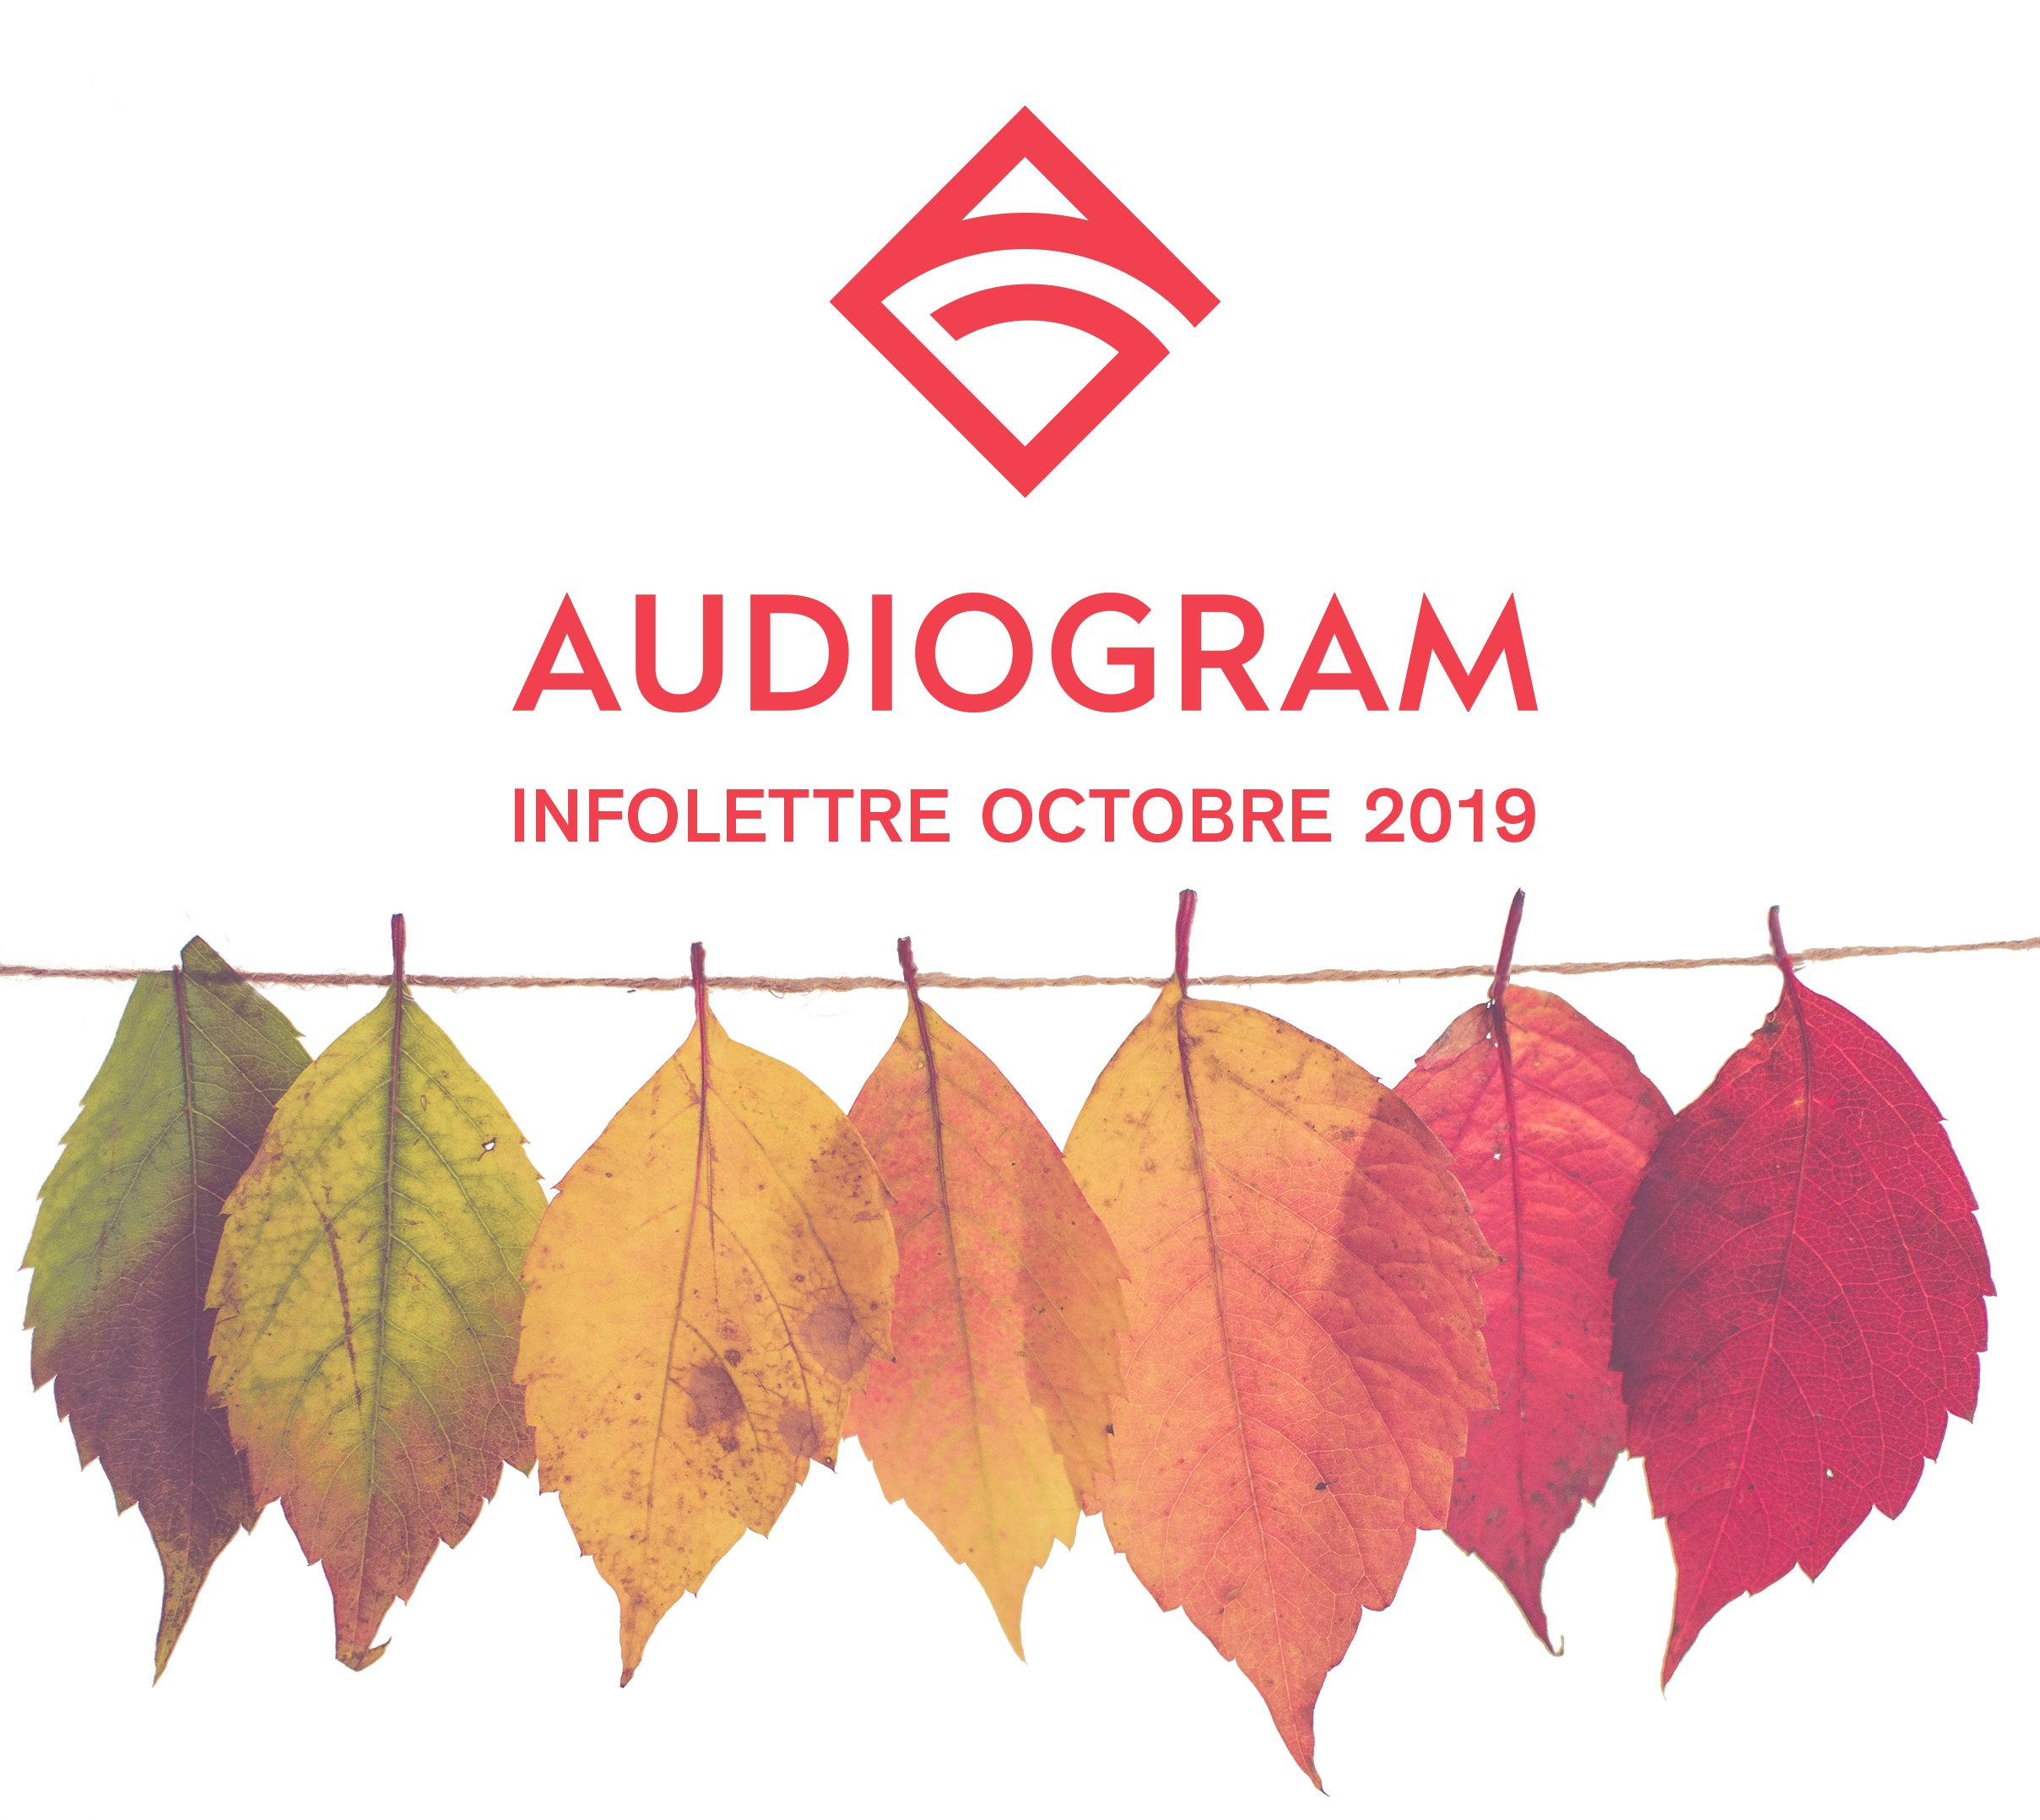 INFOLETTRE AUDIOGRAM OCTOBRE 2019